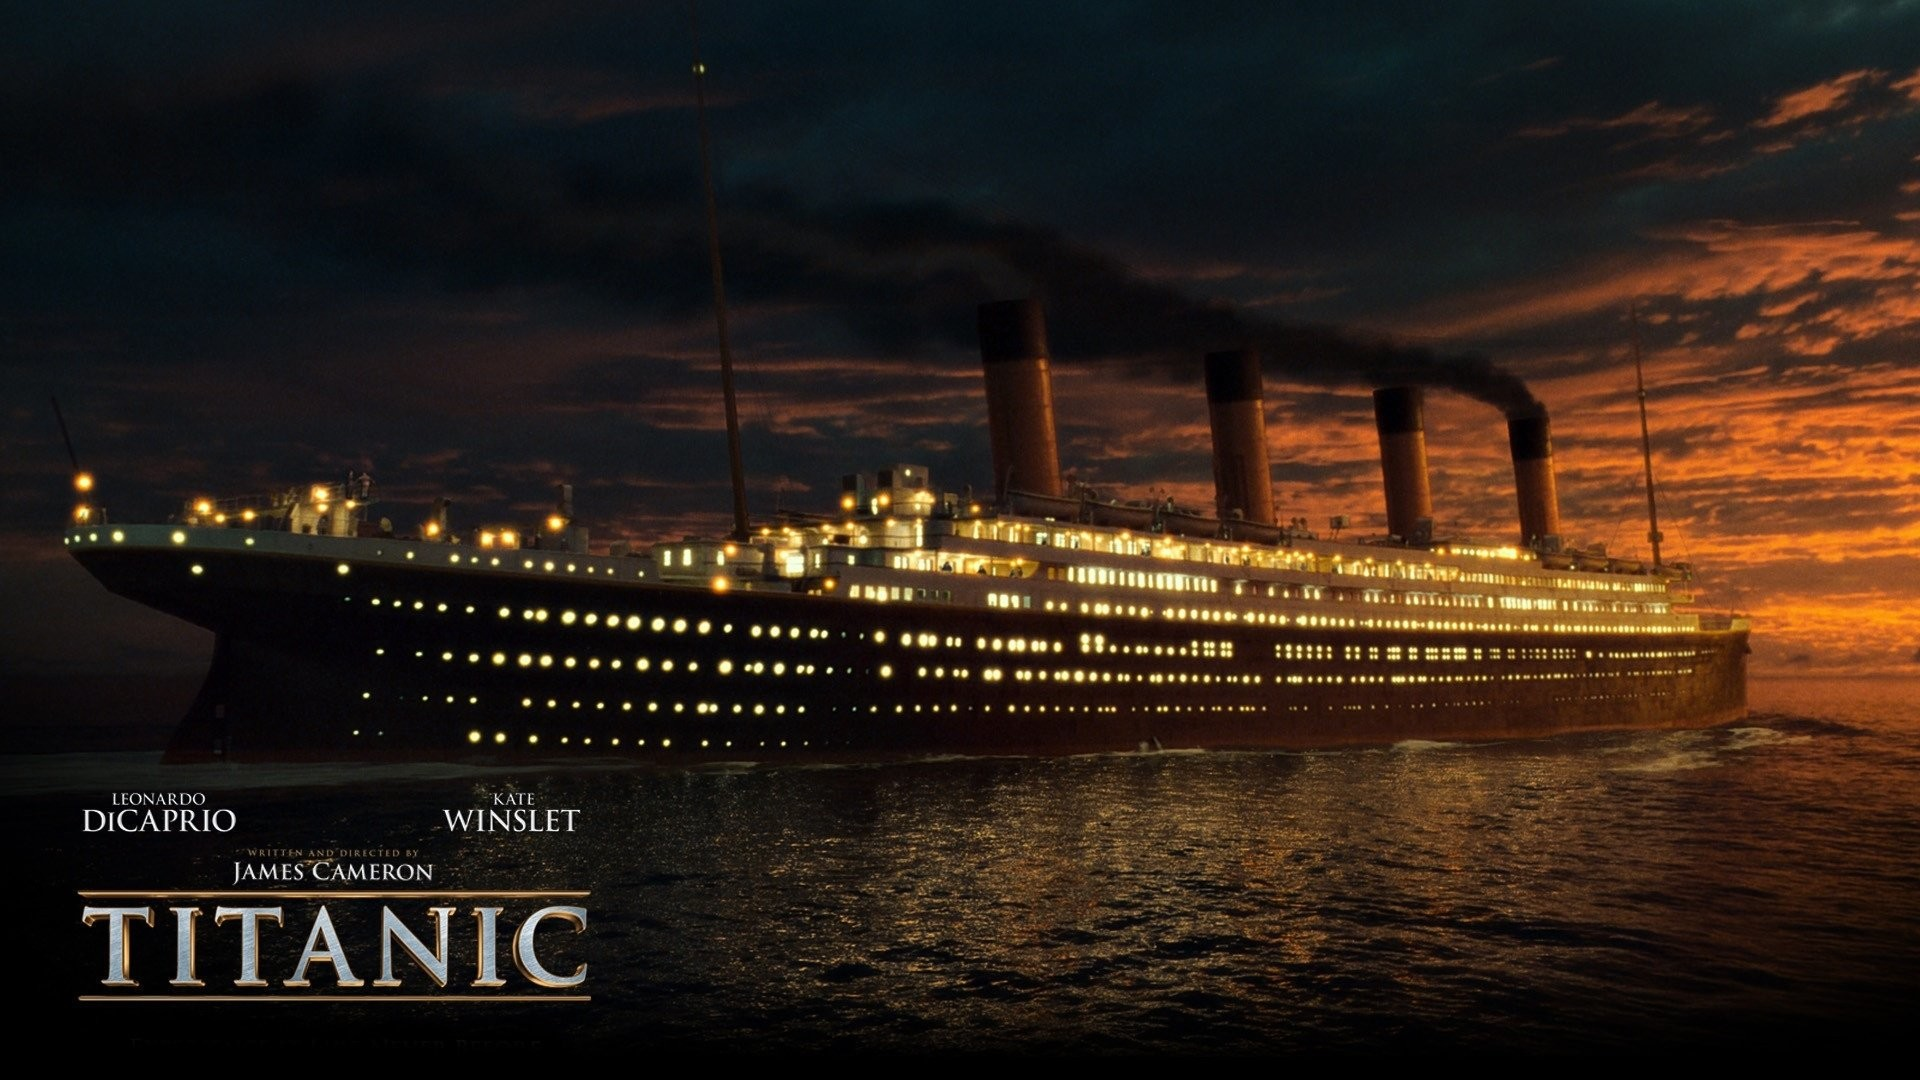 1920x1080 Movie - Titanic Ship Movie Wallpaper